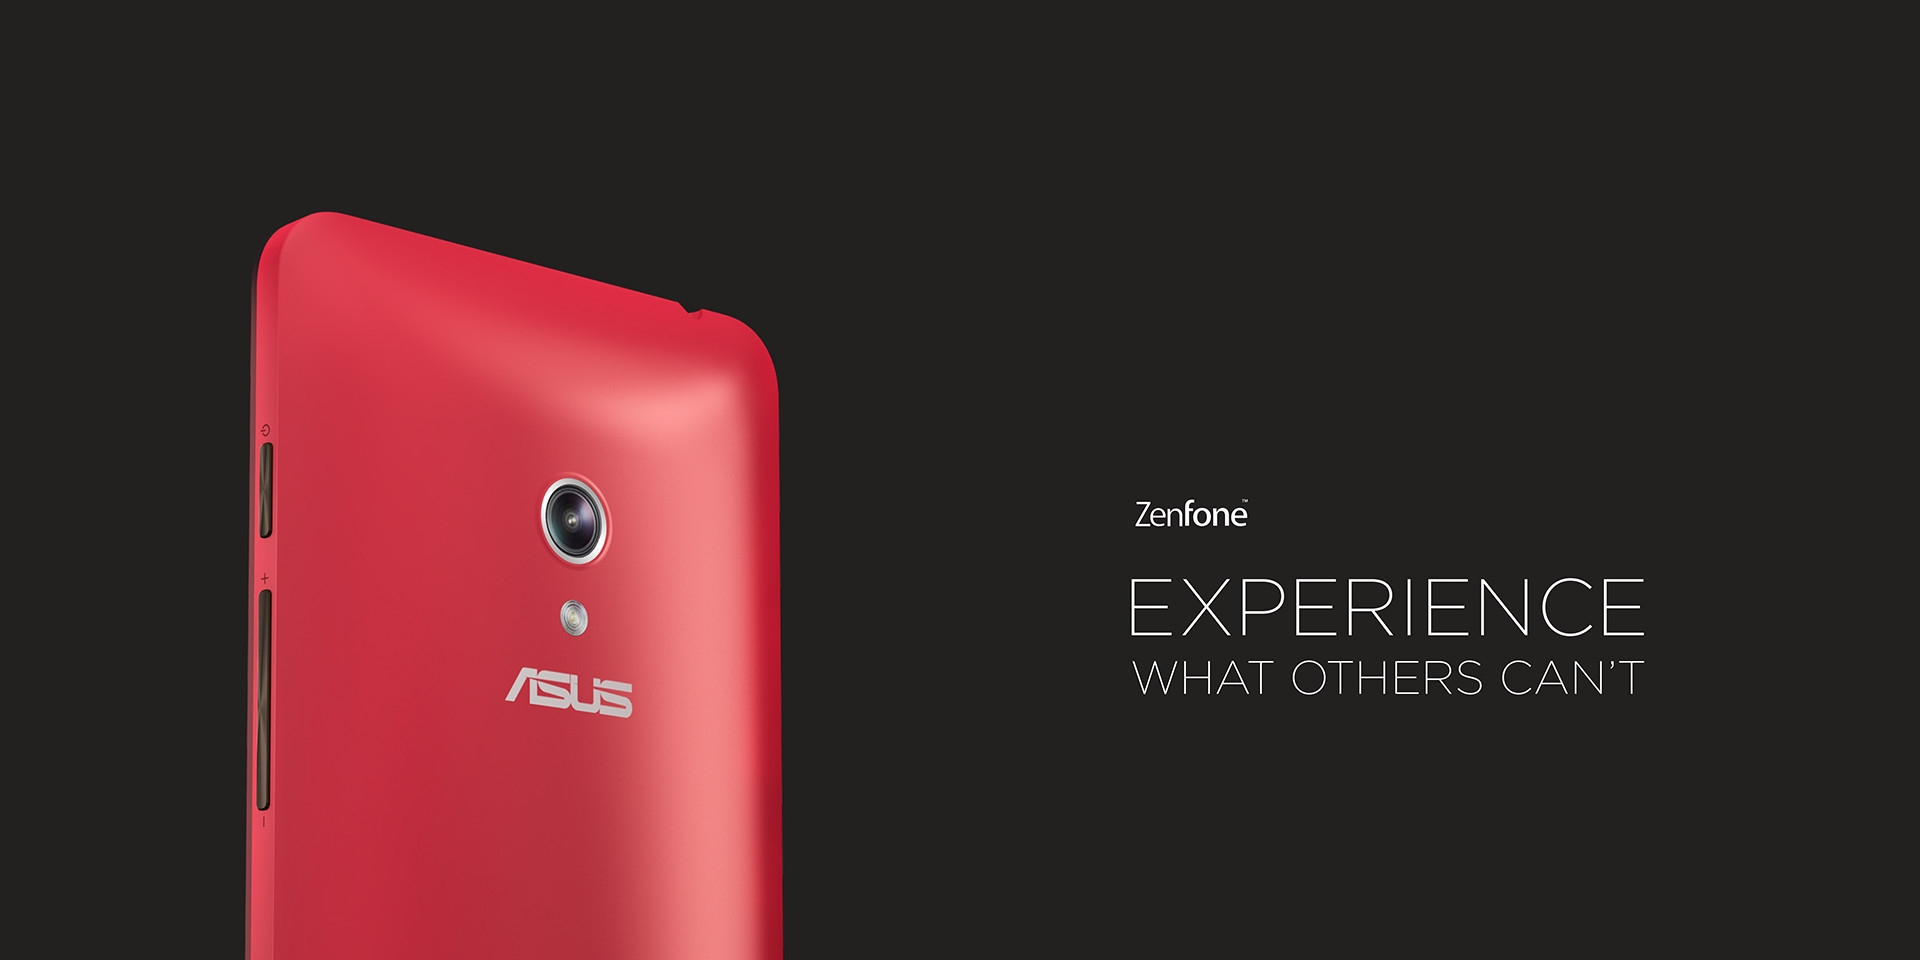 ASUS ZenFone Integrated Campaign